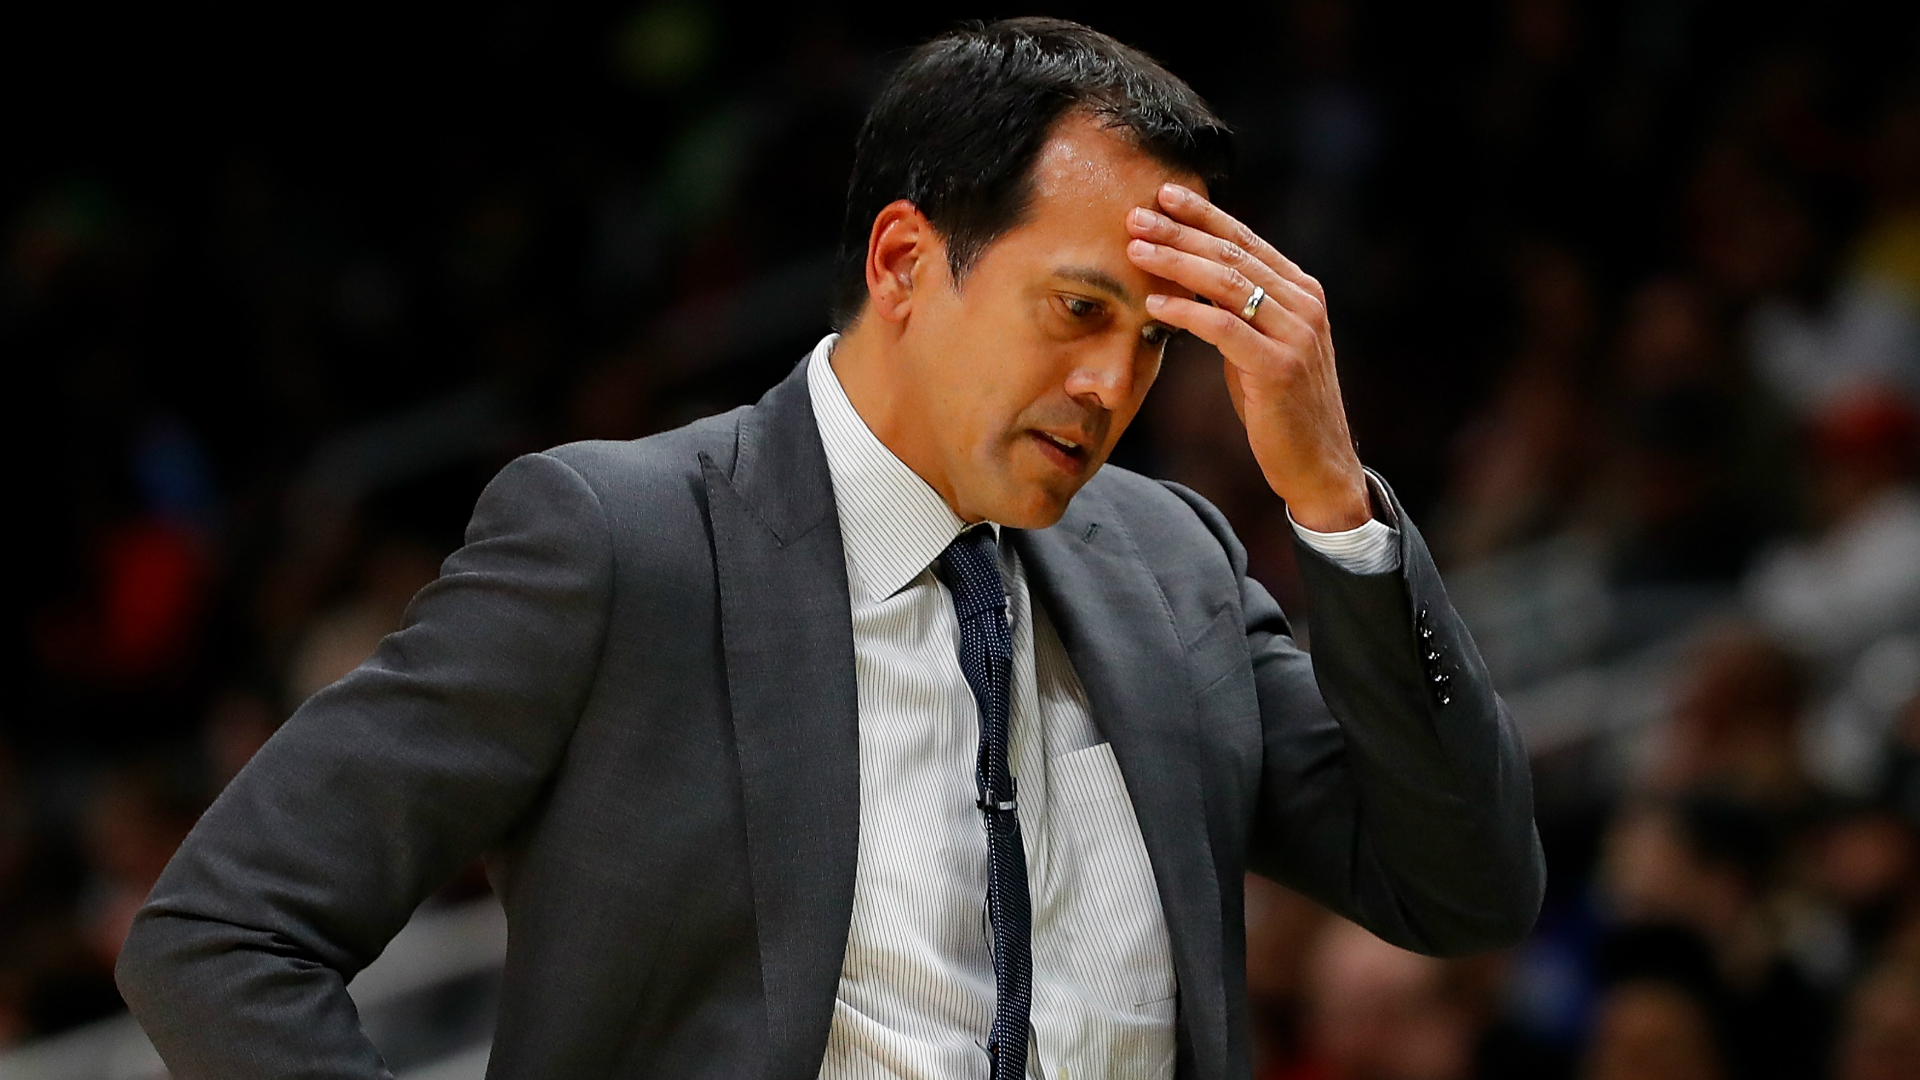 Heat coach Spoelstra: We can't stand for systemic racism and social injustice anymore